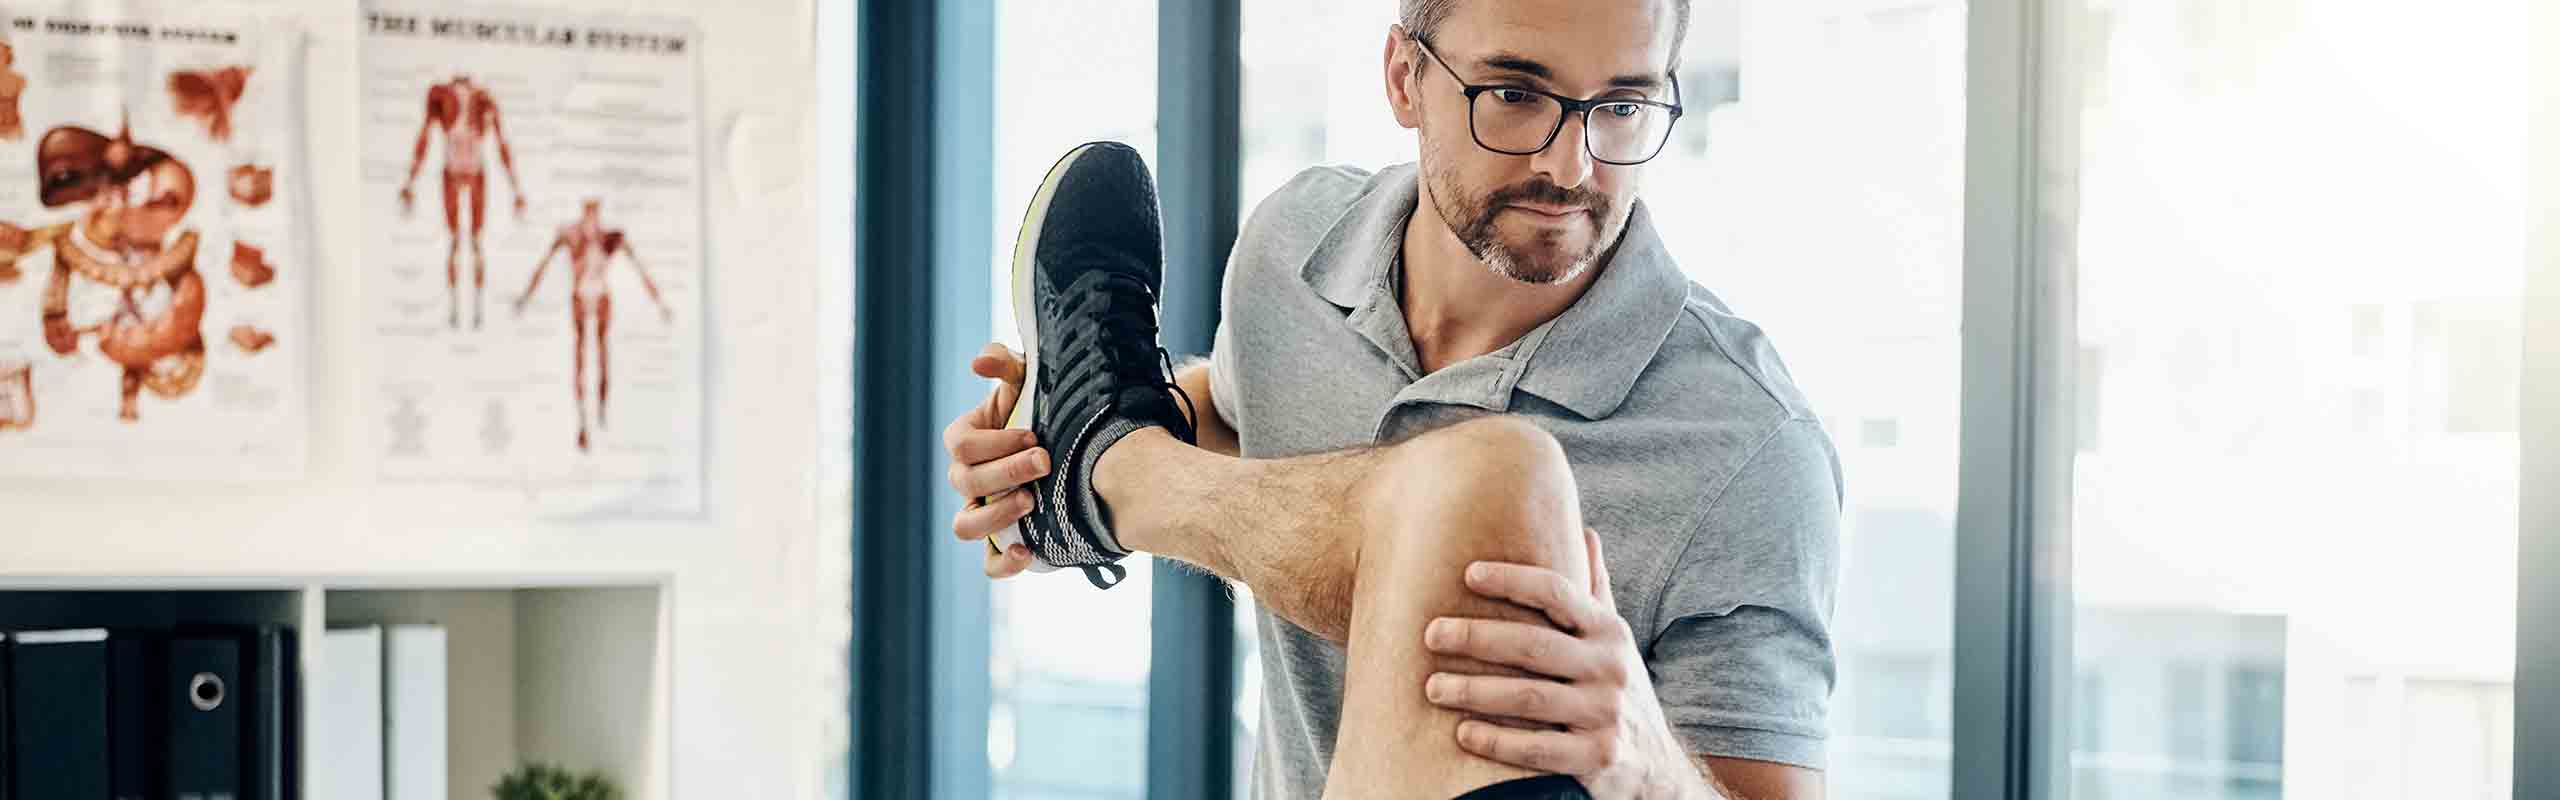 Time to renew your Physical Therapy License